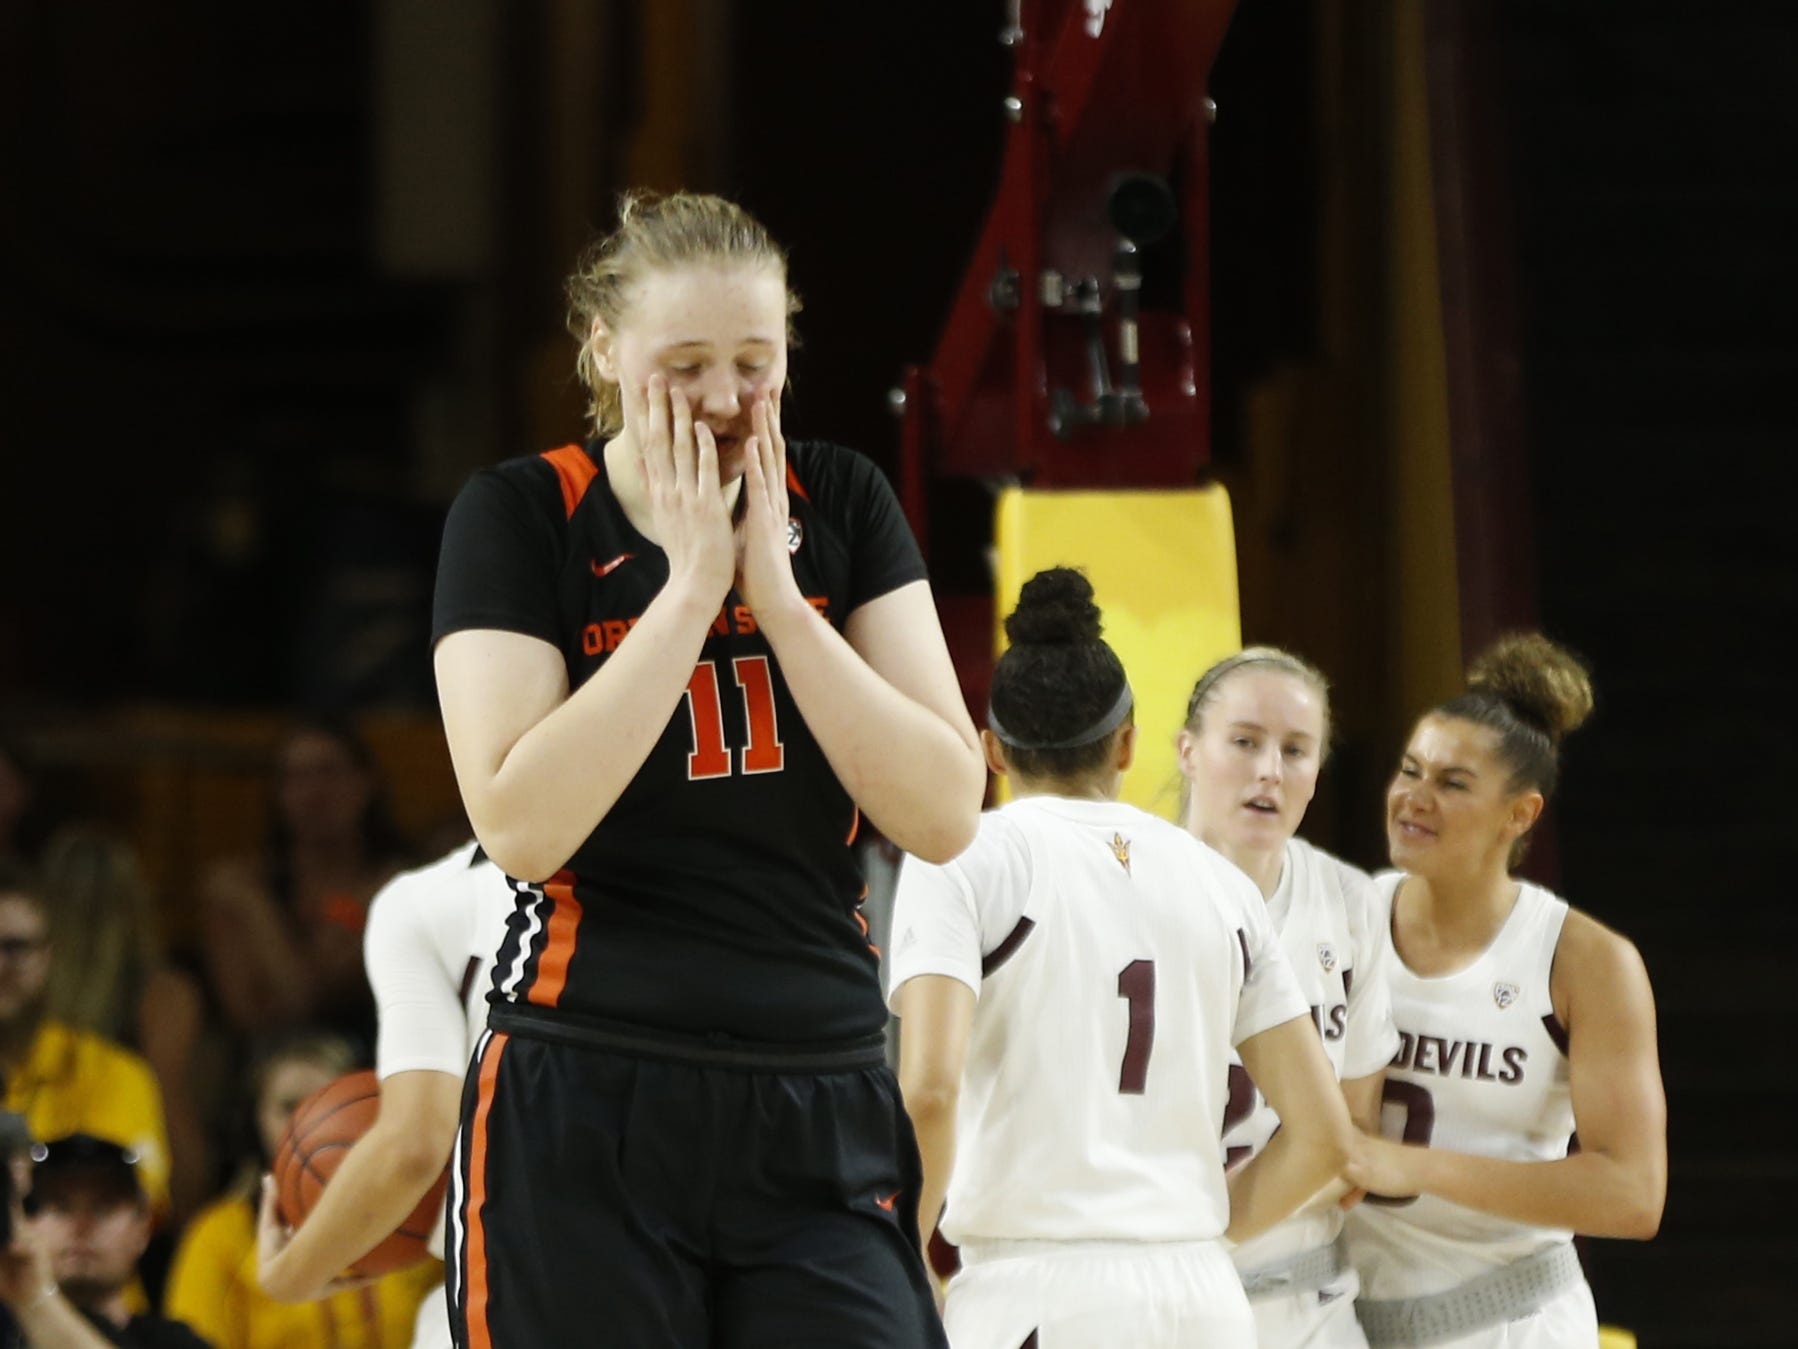 Oregon State's Joanna Grymek (11) reacts after being called for a foul against ASU during the first half at Wells Fargo Arena in Tempe, Ariz. on March 1, 2019.